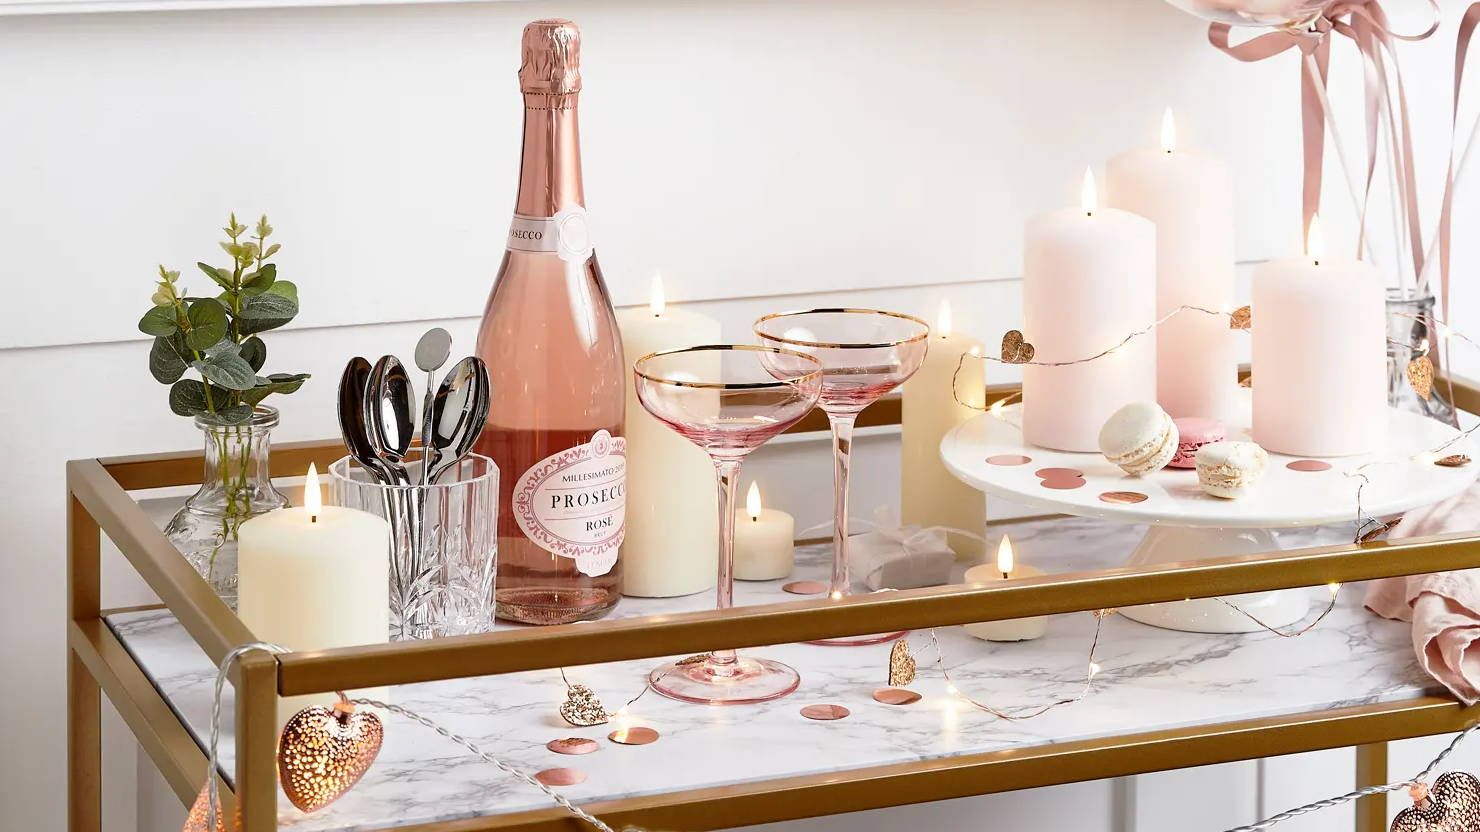 Valentines day table with LED candles, micro heart lights displayed with prosecco and glasses sat on table